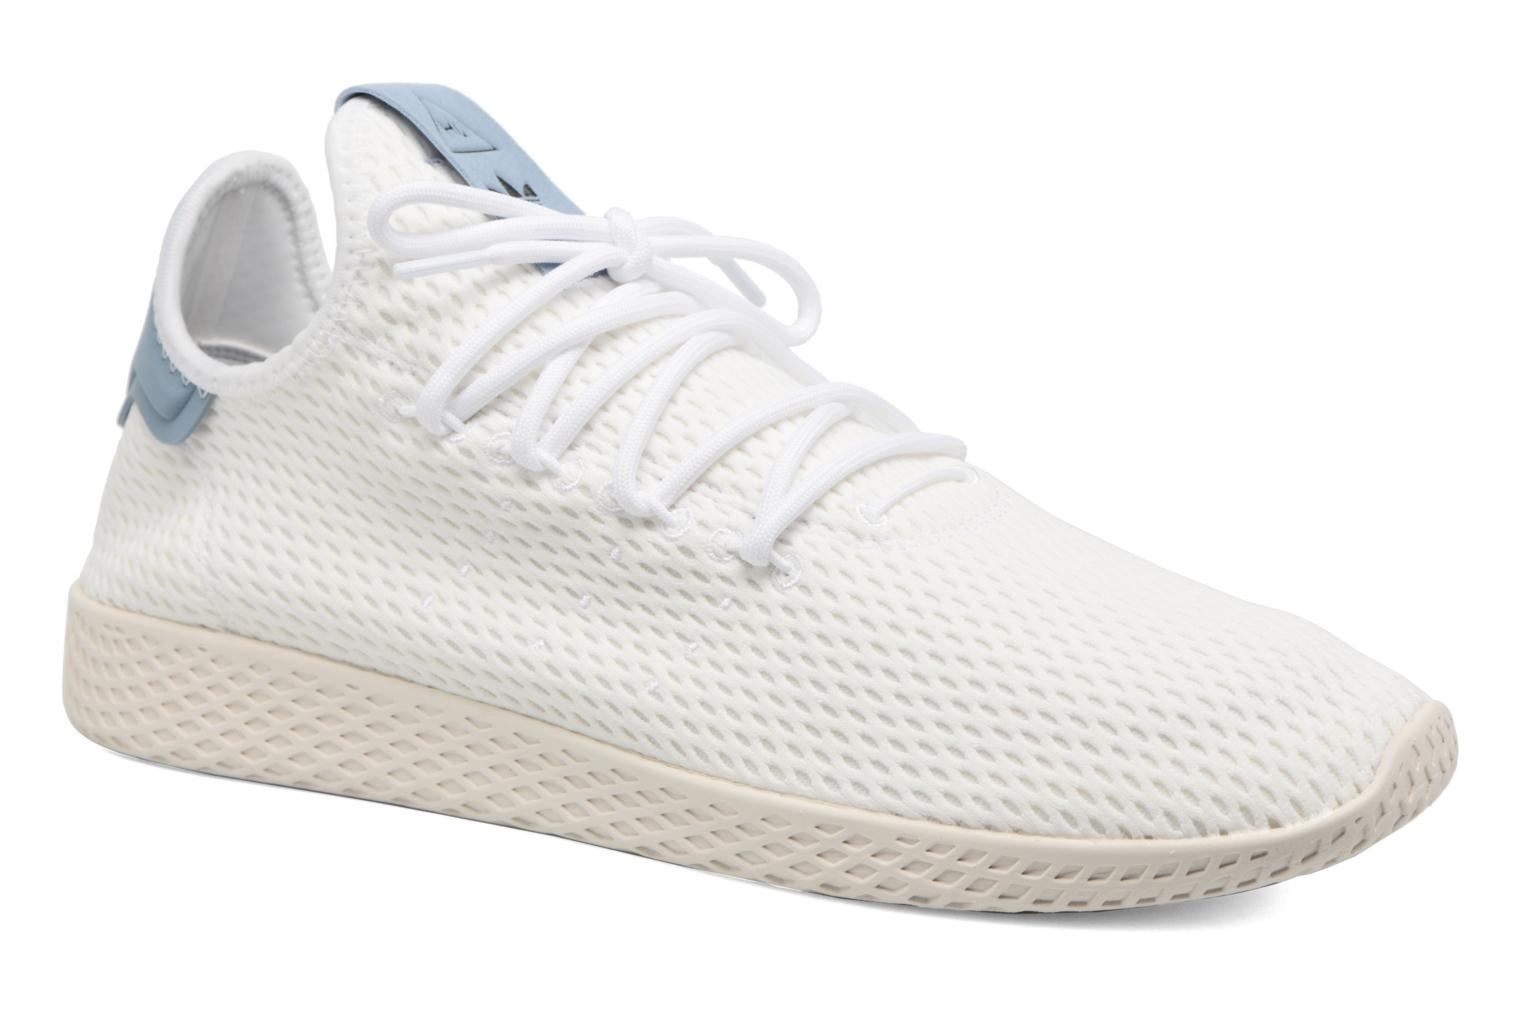 Pharrell Williams Tennis Hu Ftwbla/Ftwbla/Bletac